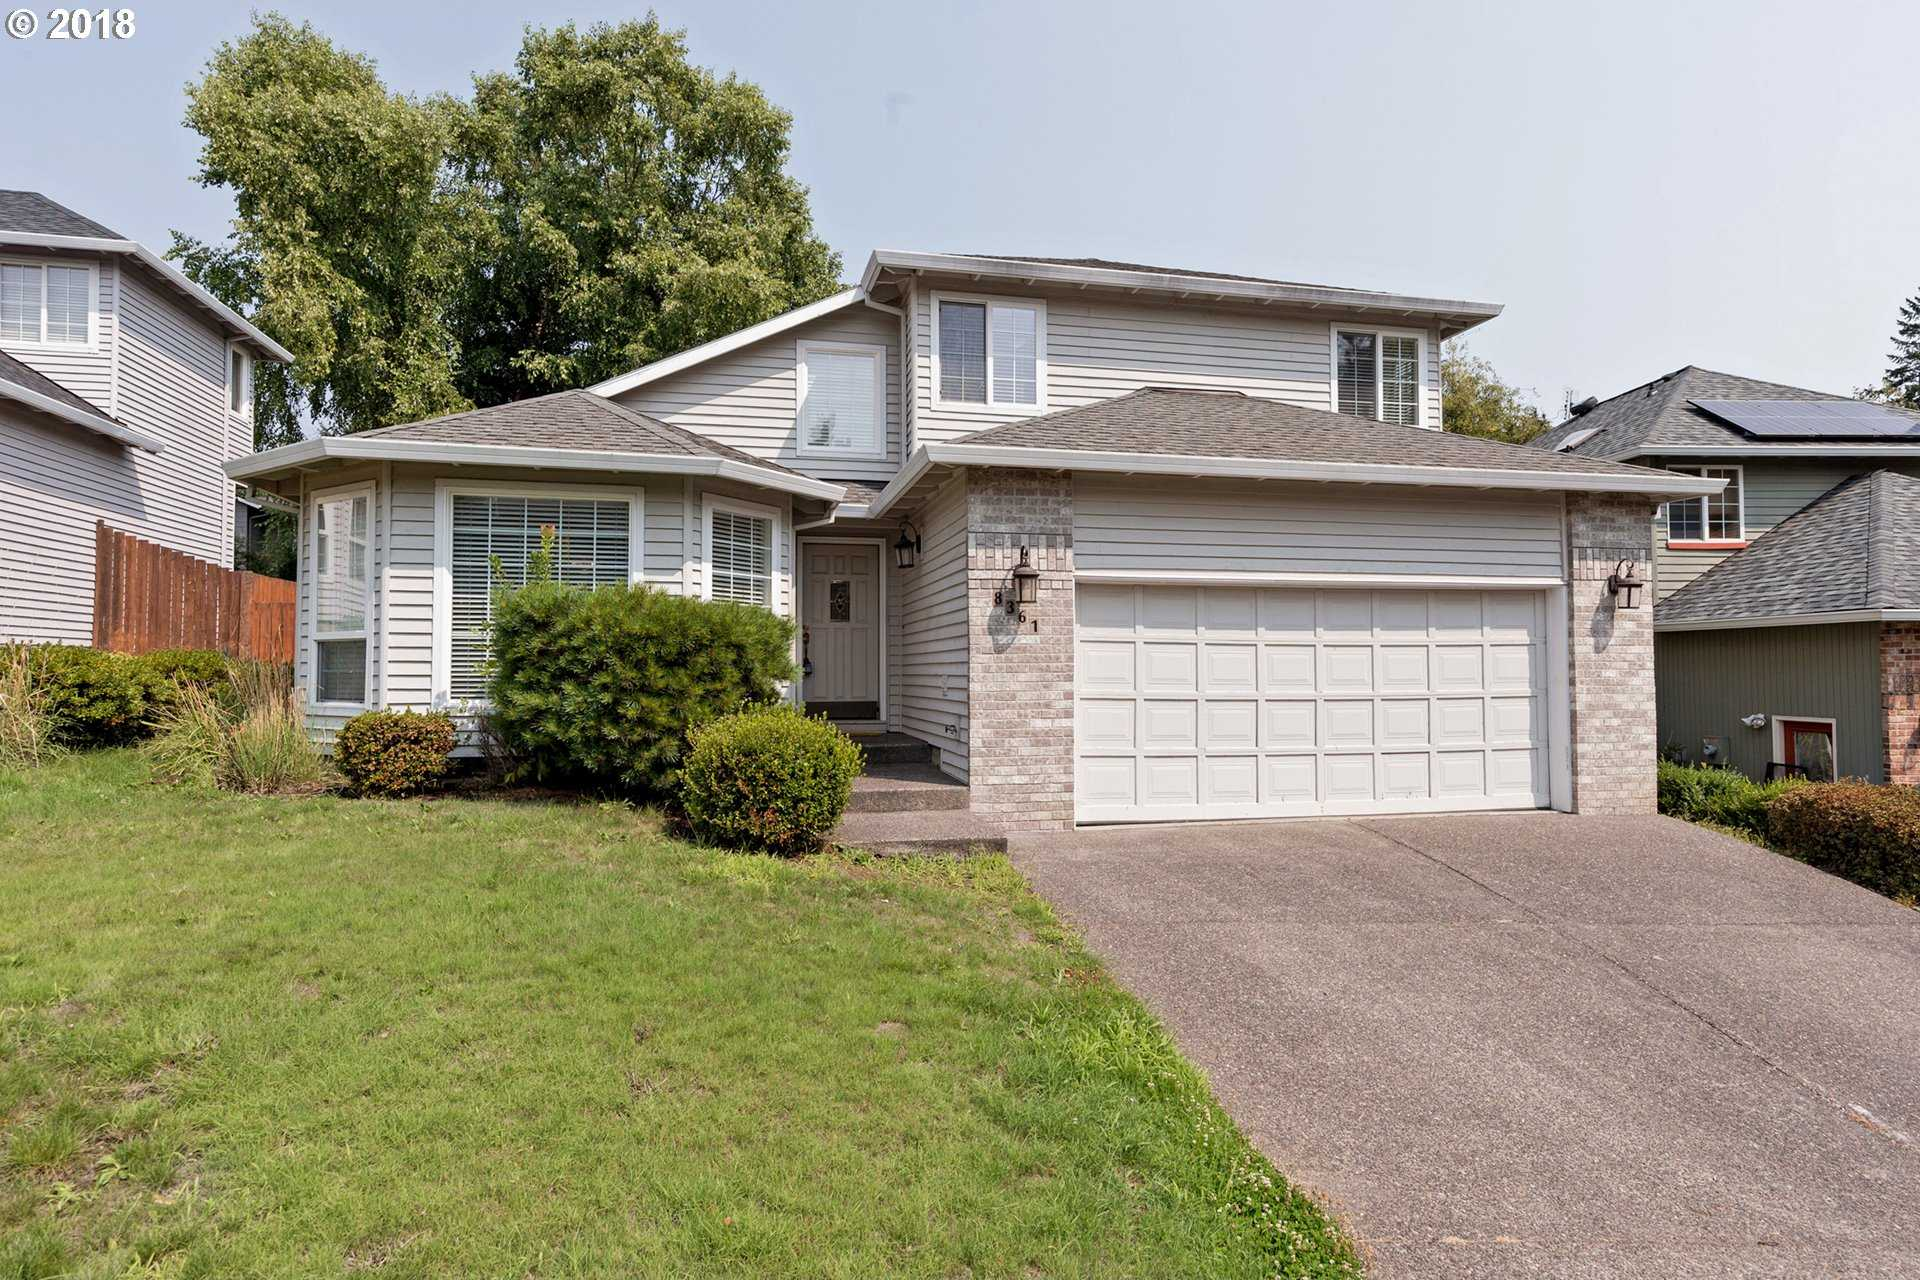 $450,000 - 4Br/3Ba -  for Sale in Tigard